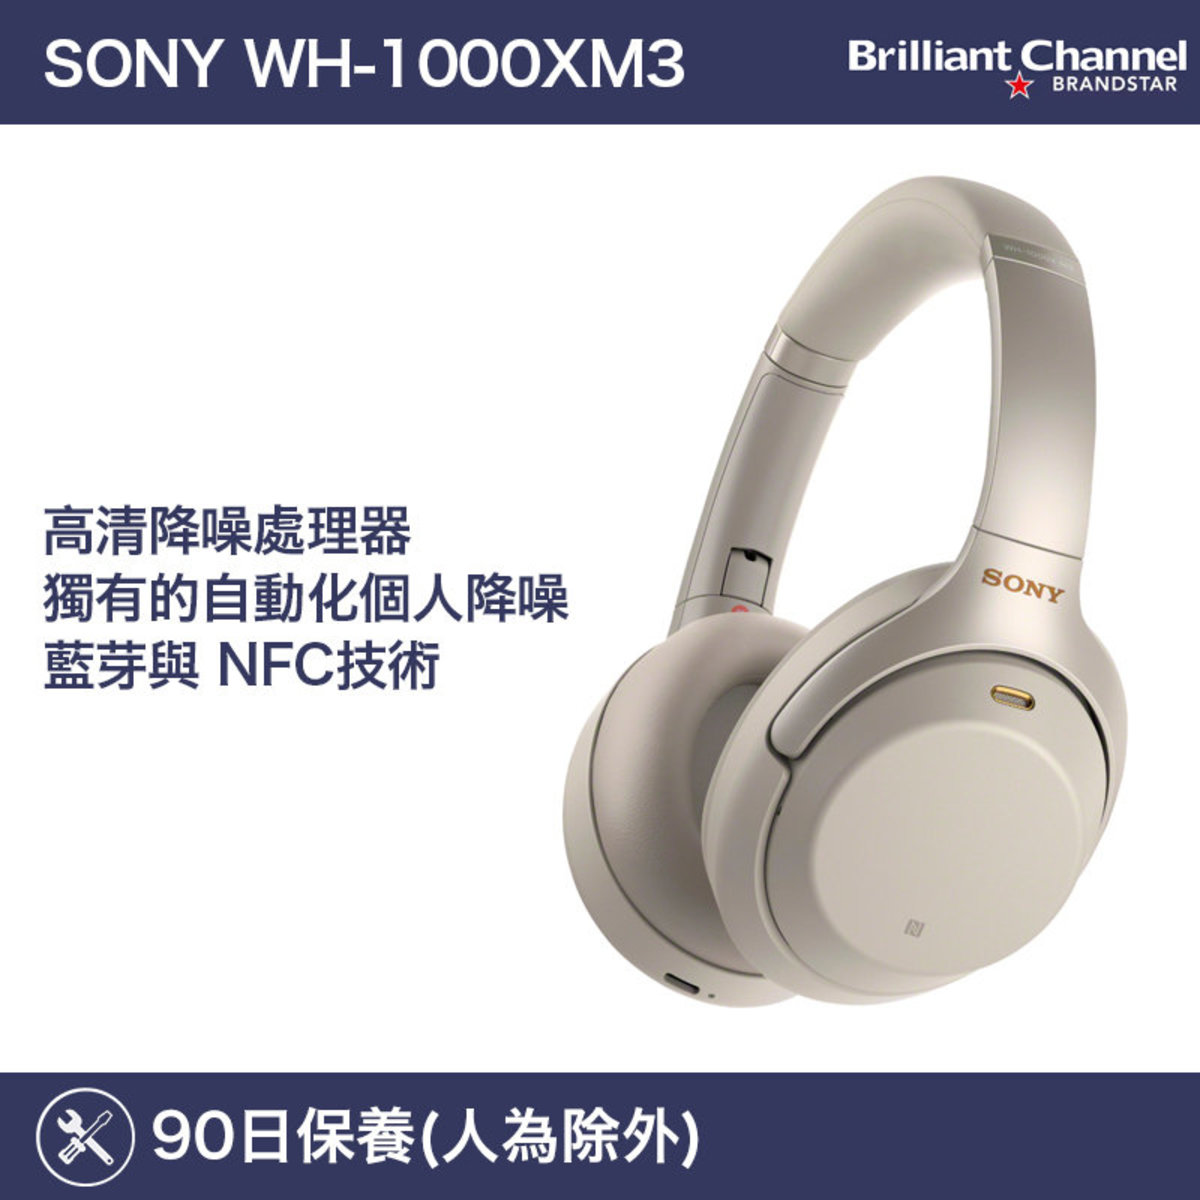 WH-1000XM3 Wireless Noise Cancelling Headphones (Silver) (Parallel Import)